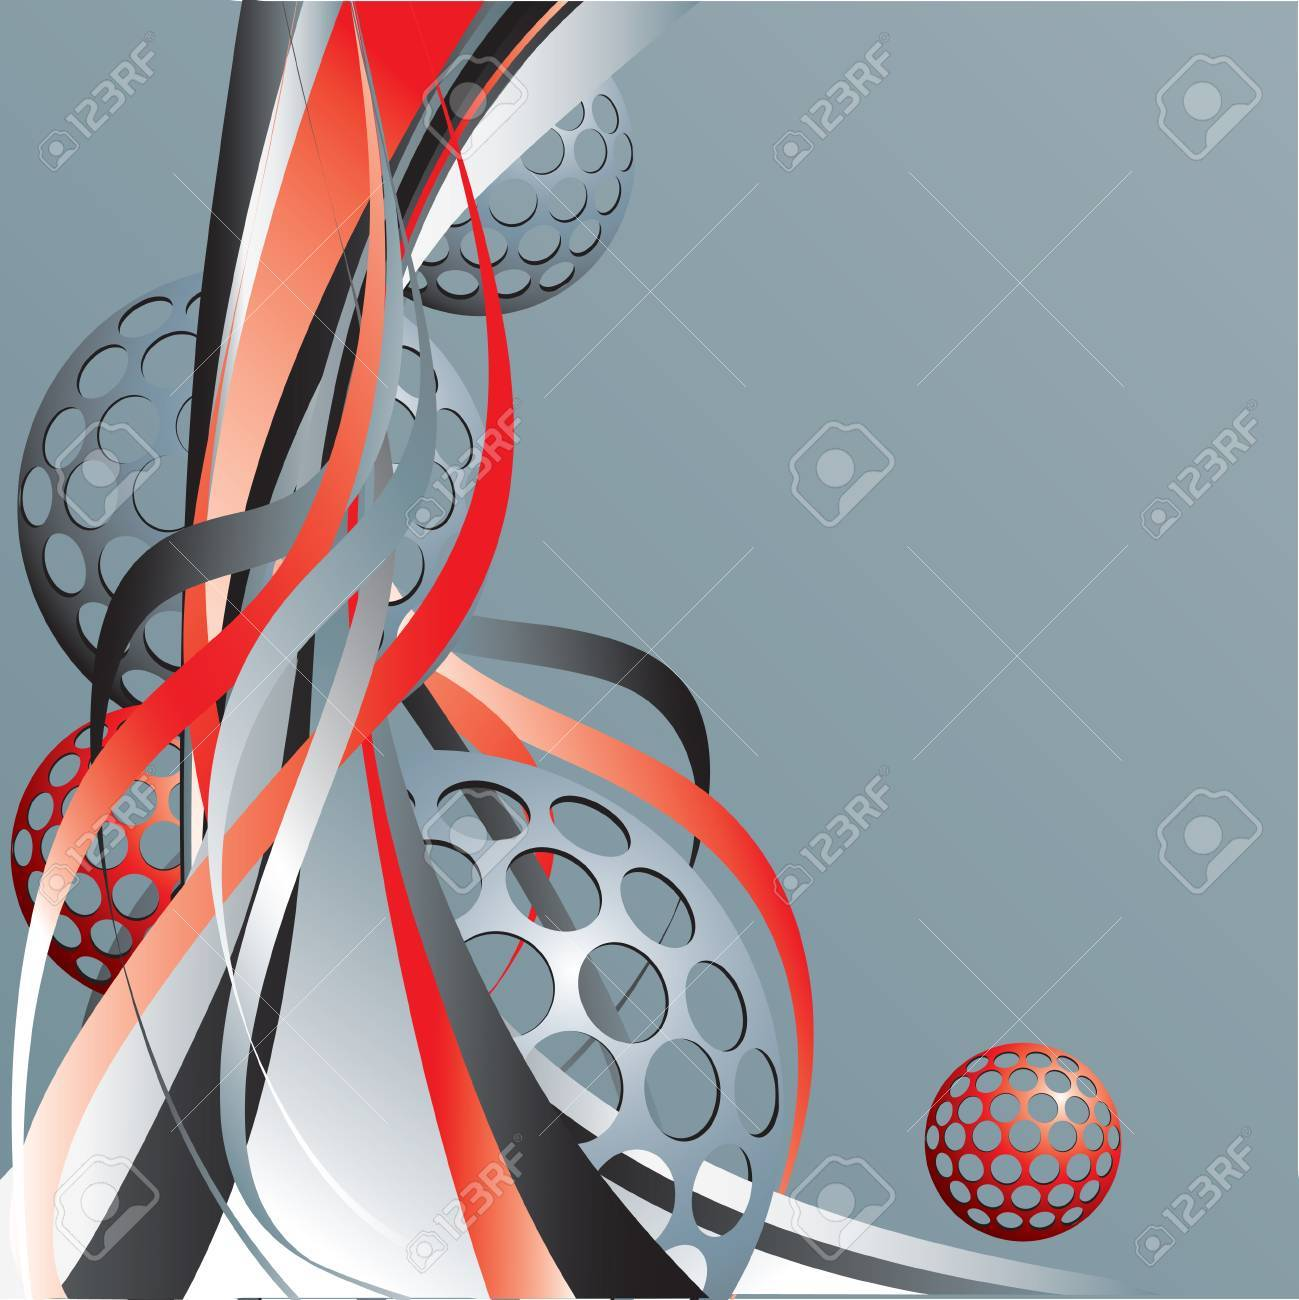 Abstract background with lines. Stock Vector - 6606783